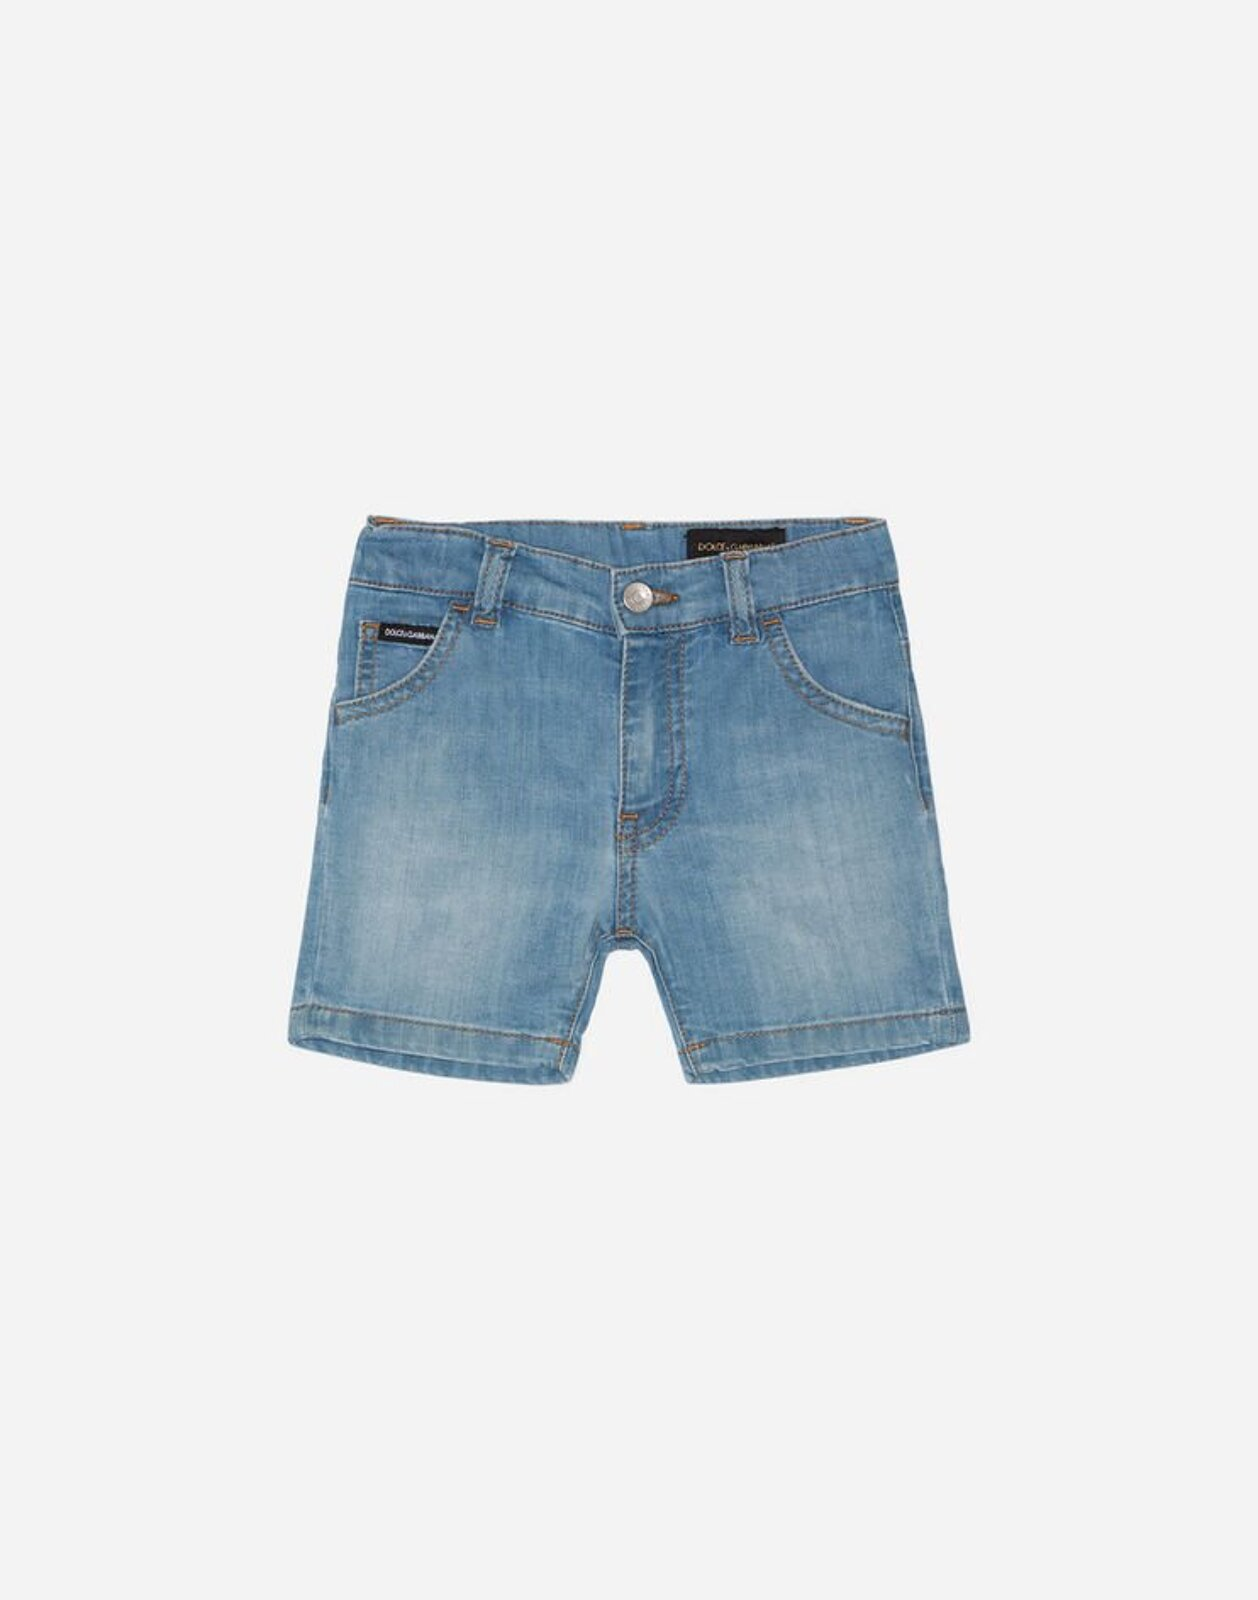 Bermuda In Denim Stretch Carta Da Zucchero Lavato - Dolce & Gabbana Junior